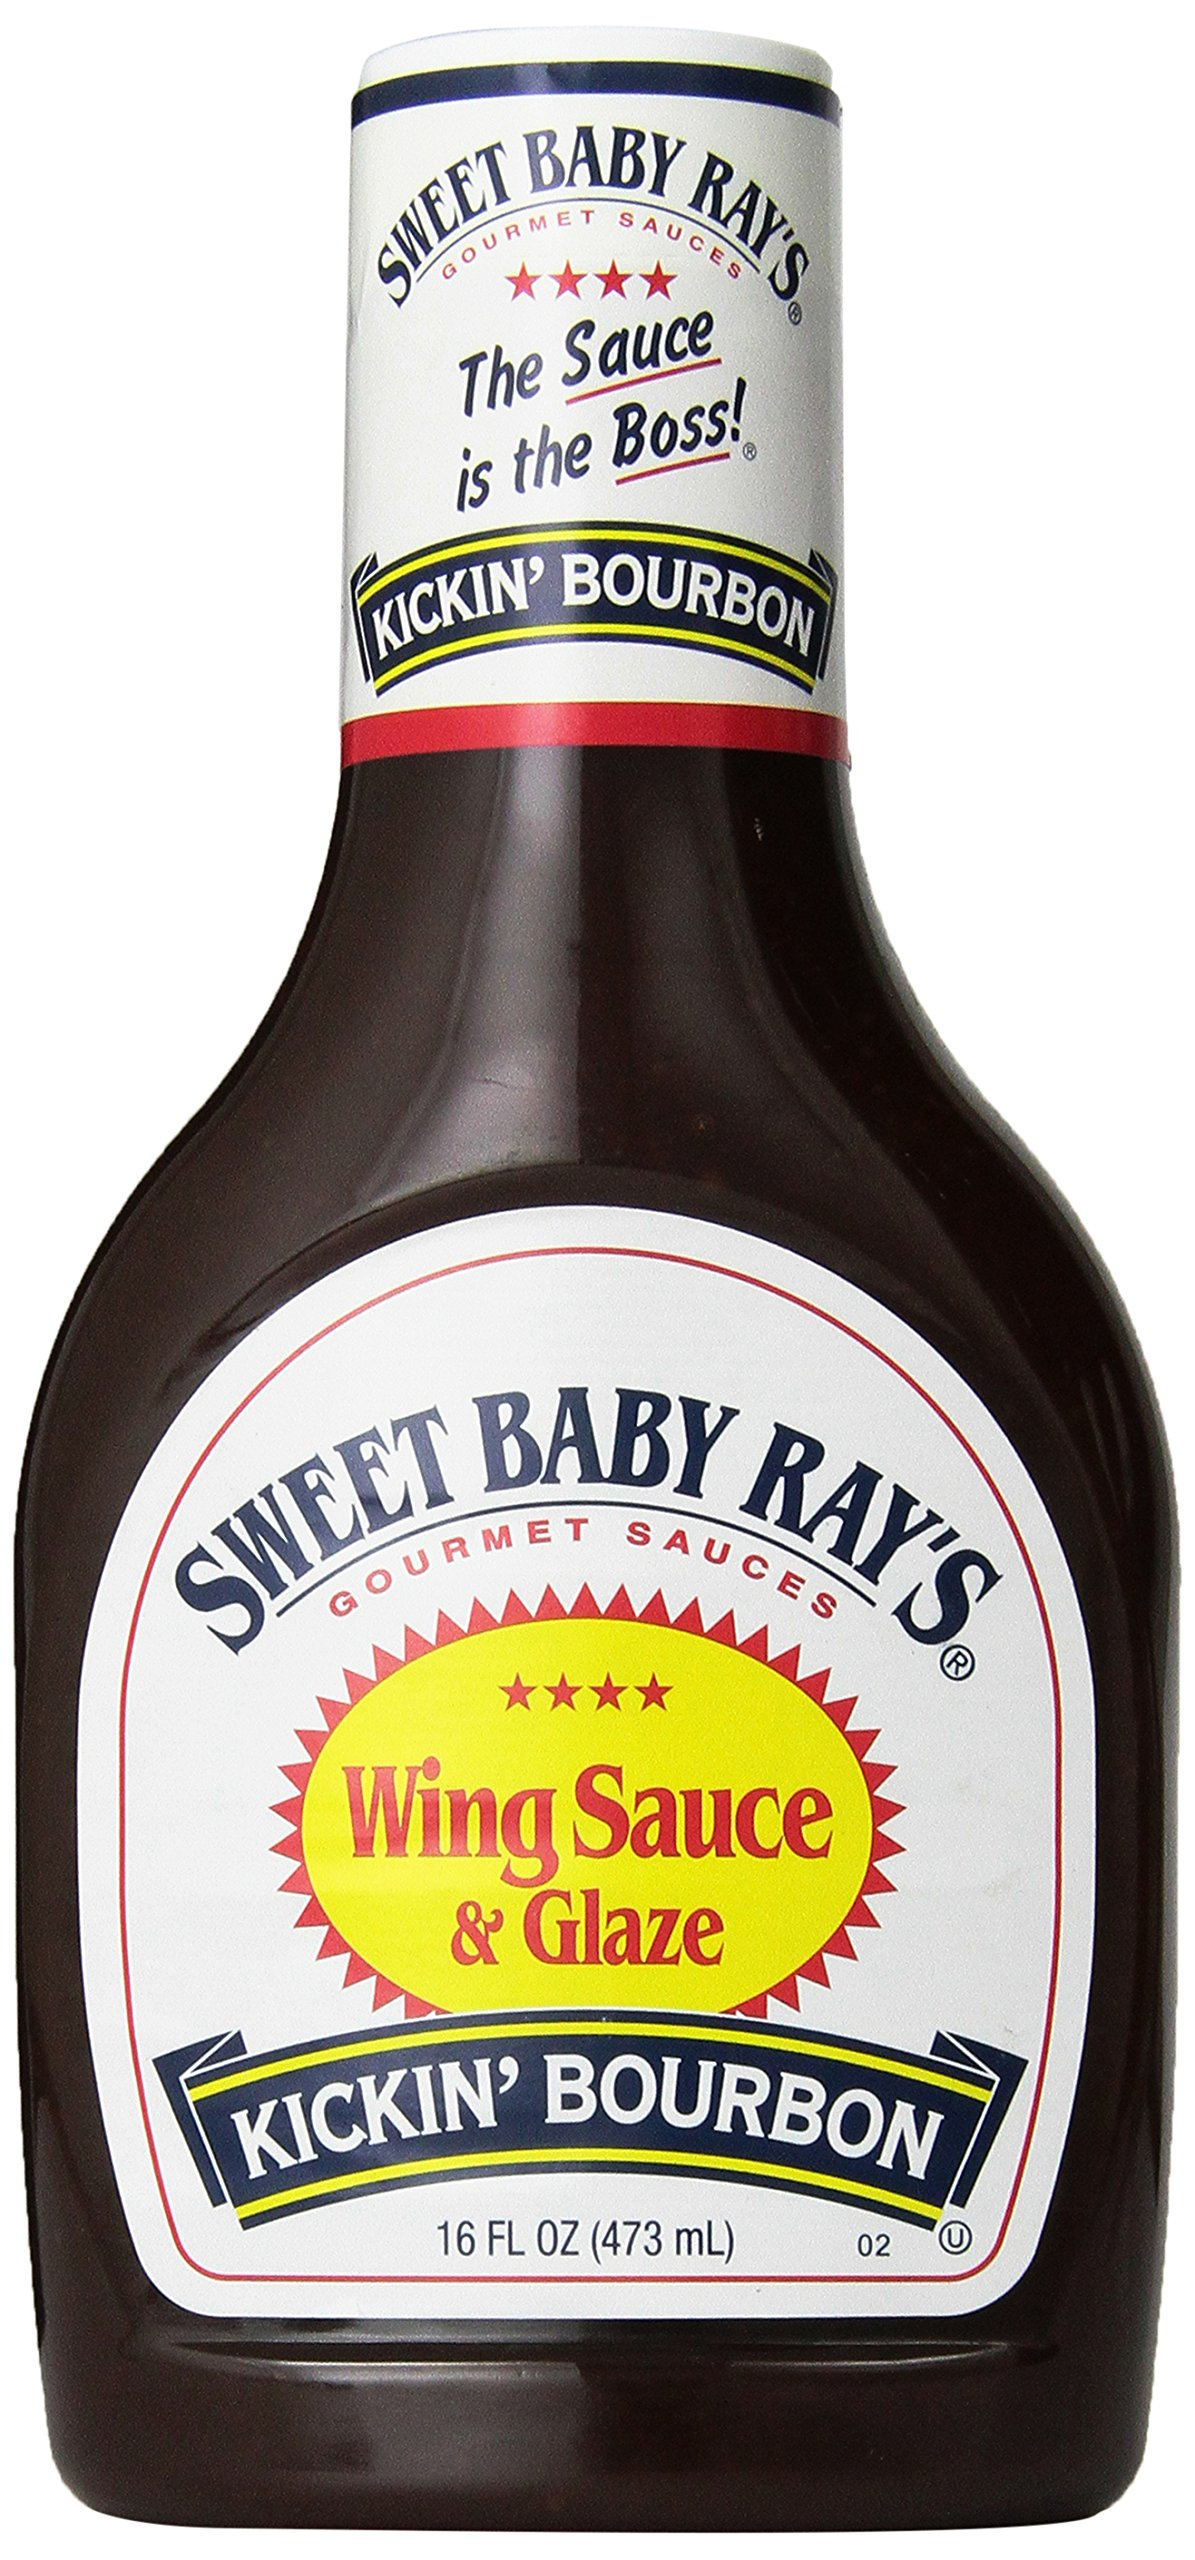 Sweet Baby Ray's, Wing Sauce & Glaze, Kickin' Bourbon, 16oz Bottle (Pack of 3)